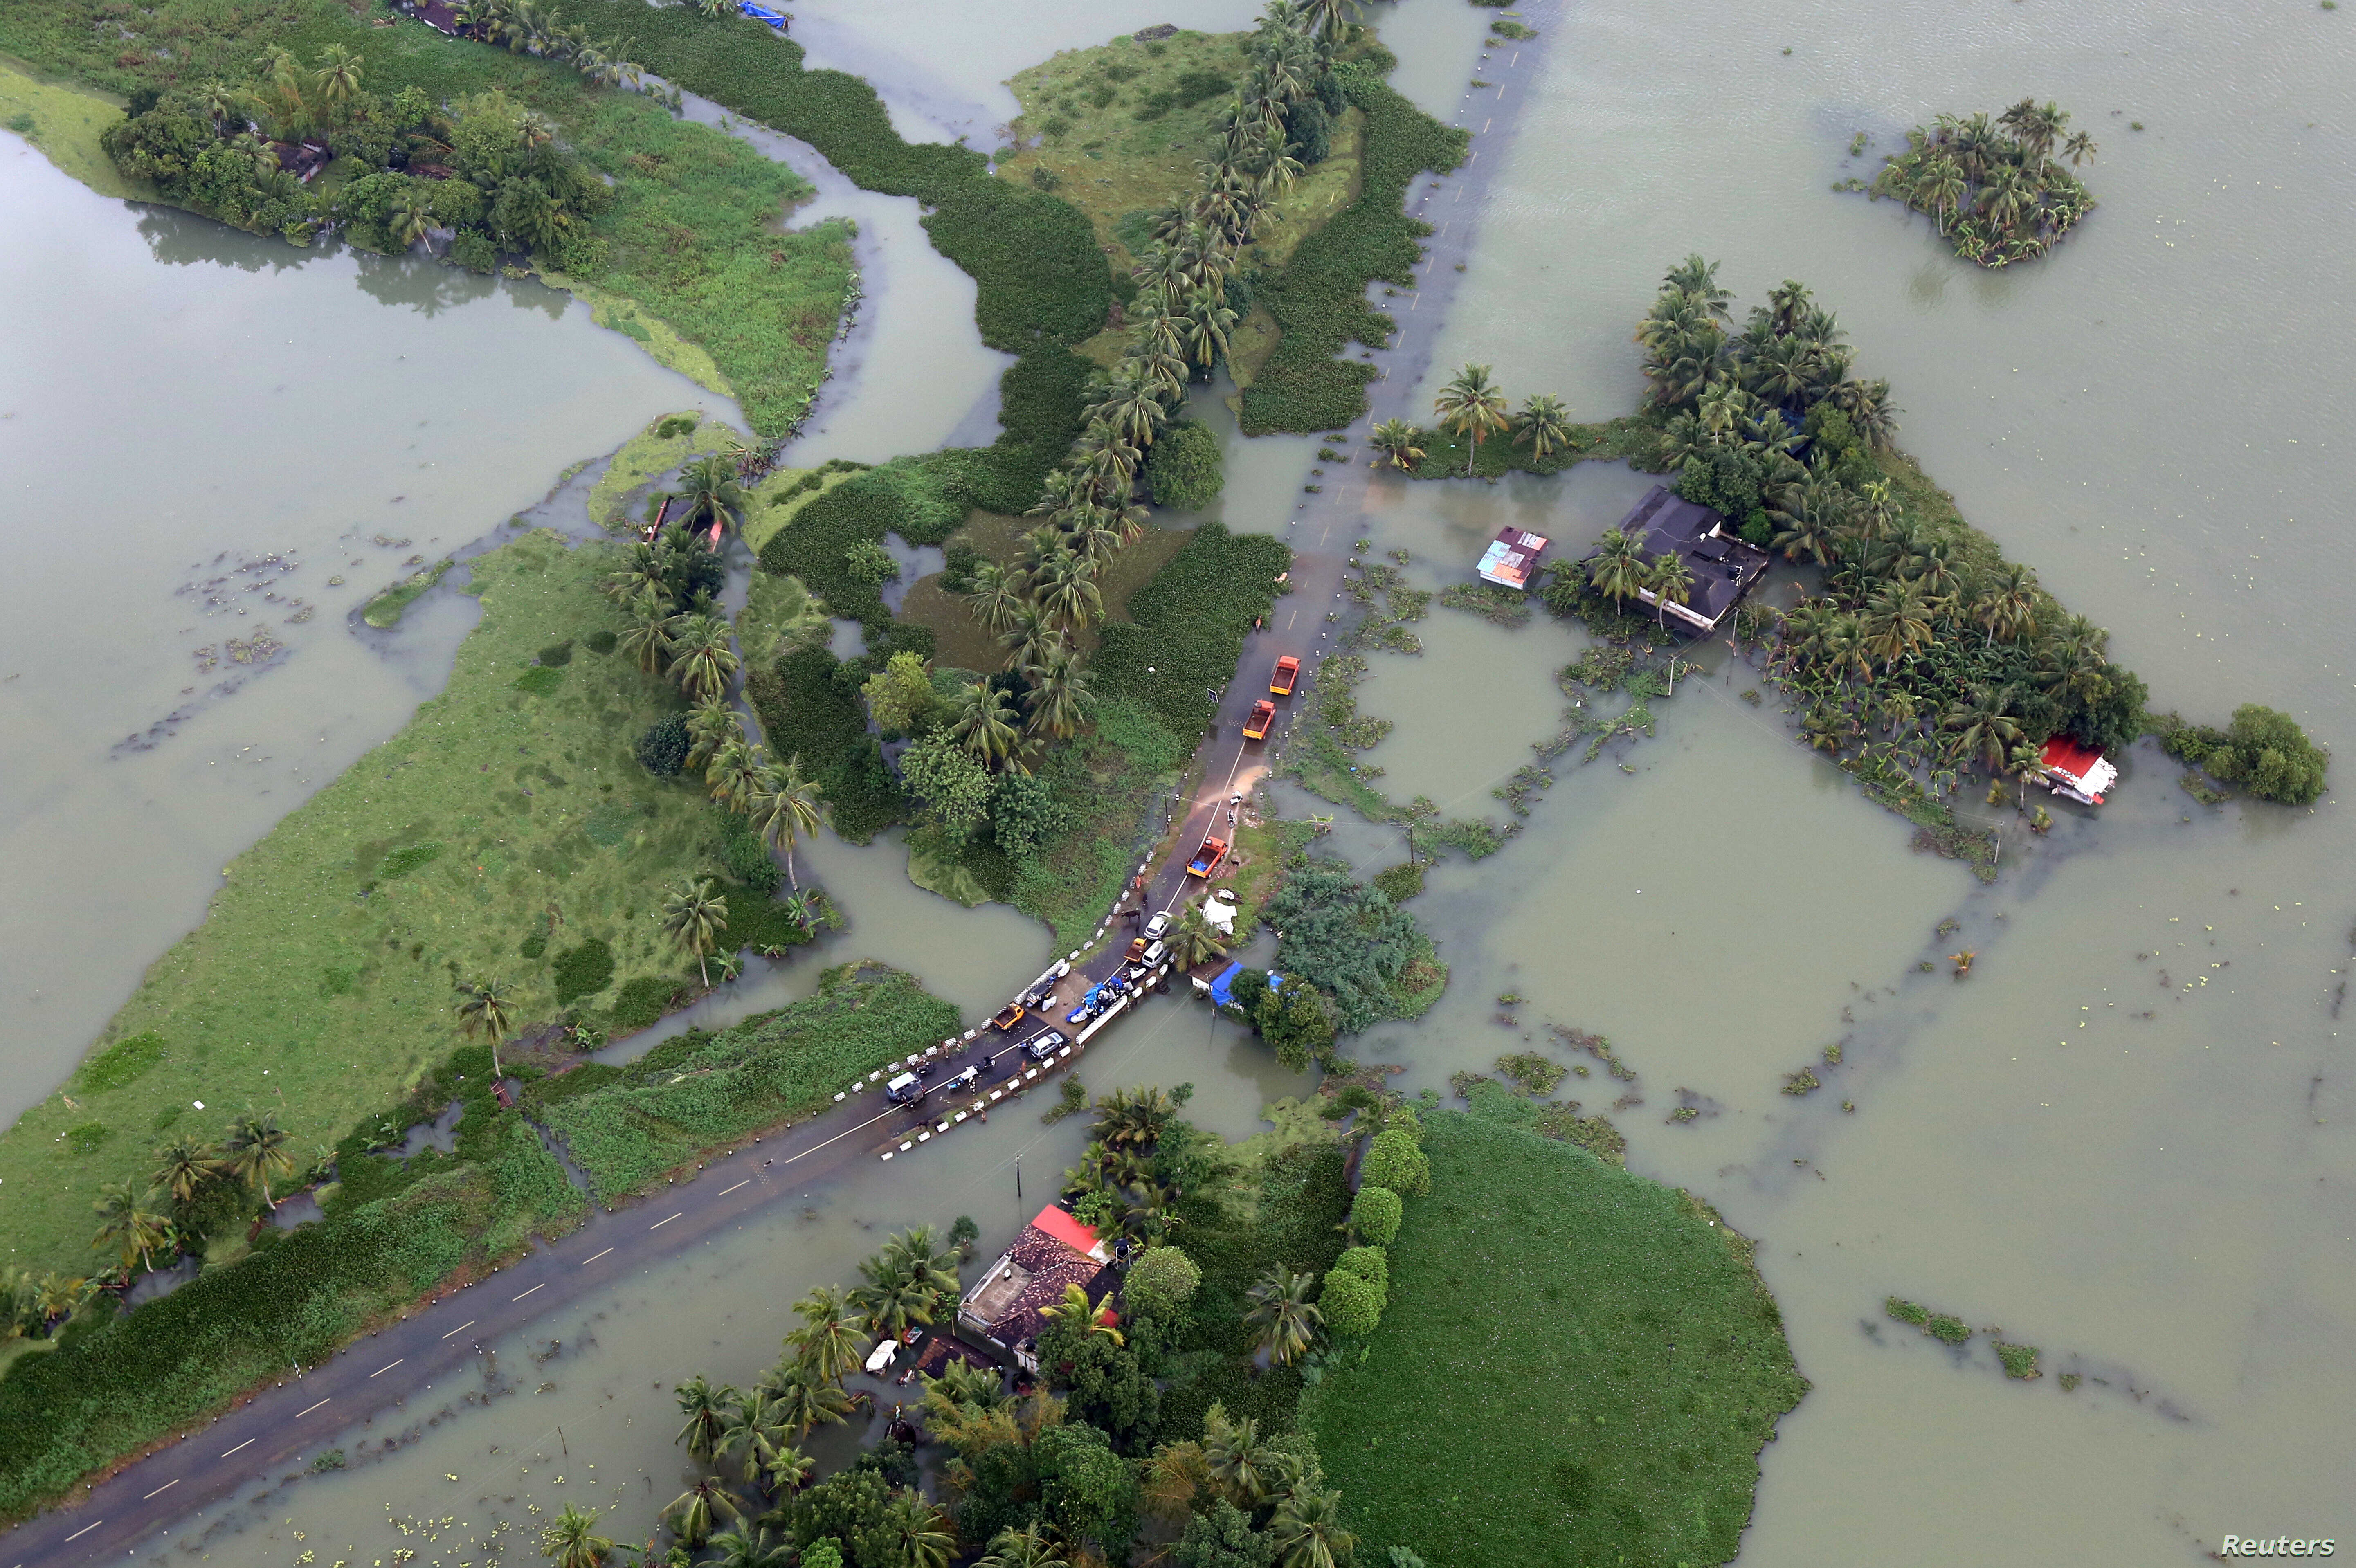 did environmental degradation worsen keralas flood tragedy  voice  an aerial view shows partially submerged road at a flooded area in the  southern state of